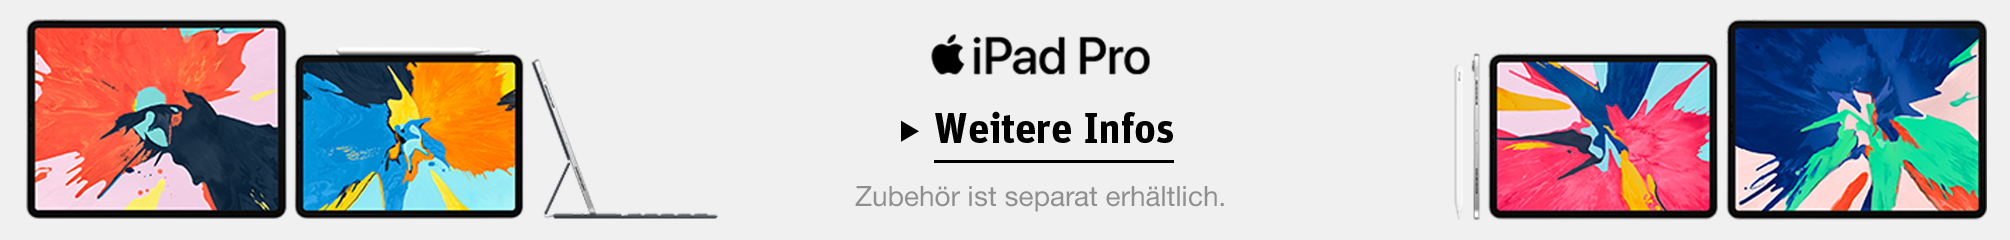 Apple iPad Pro Produktseite